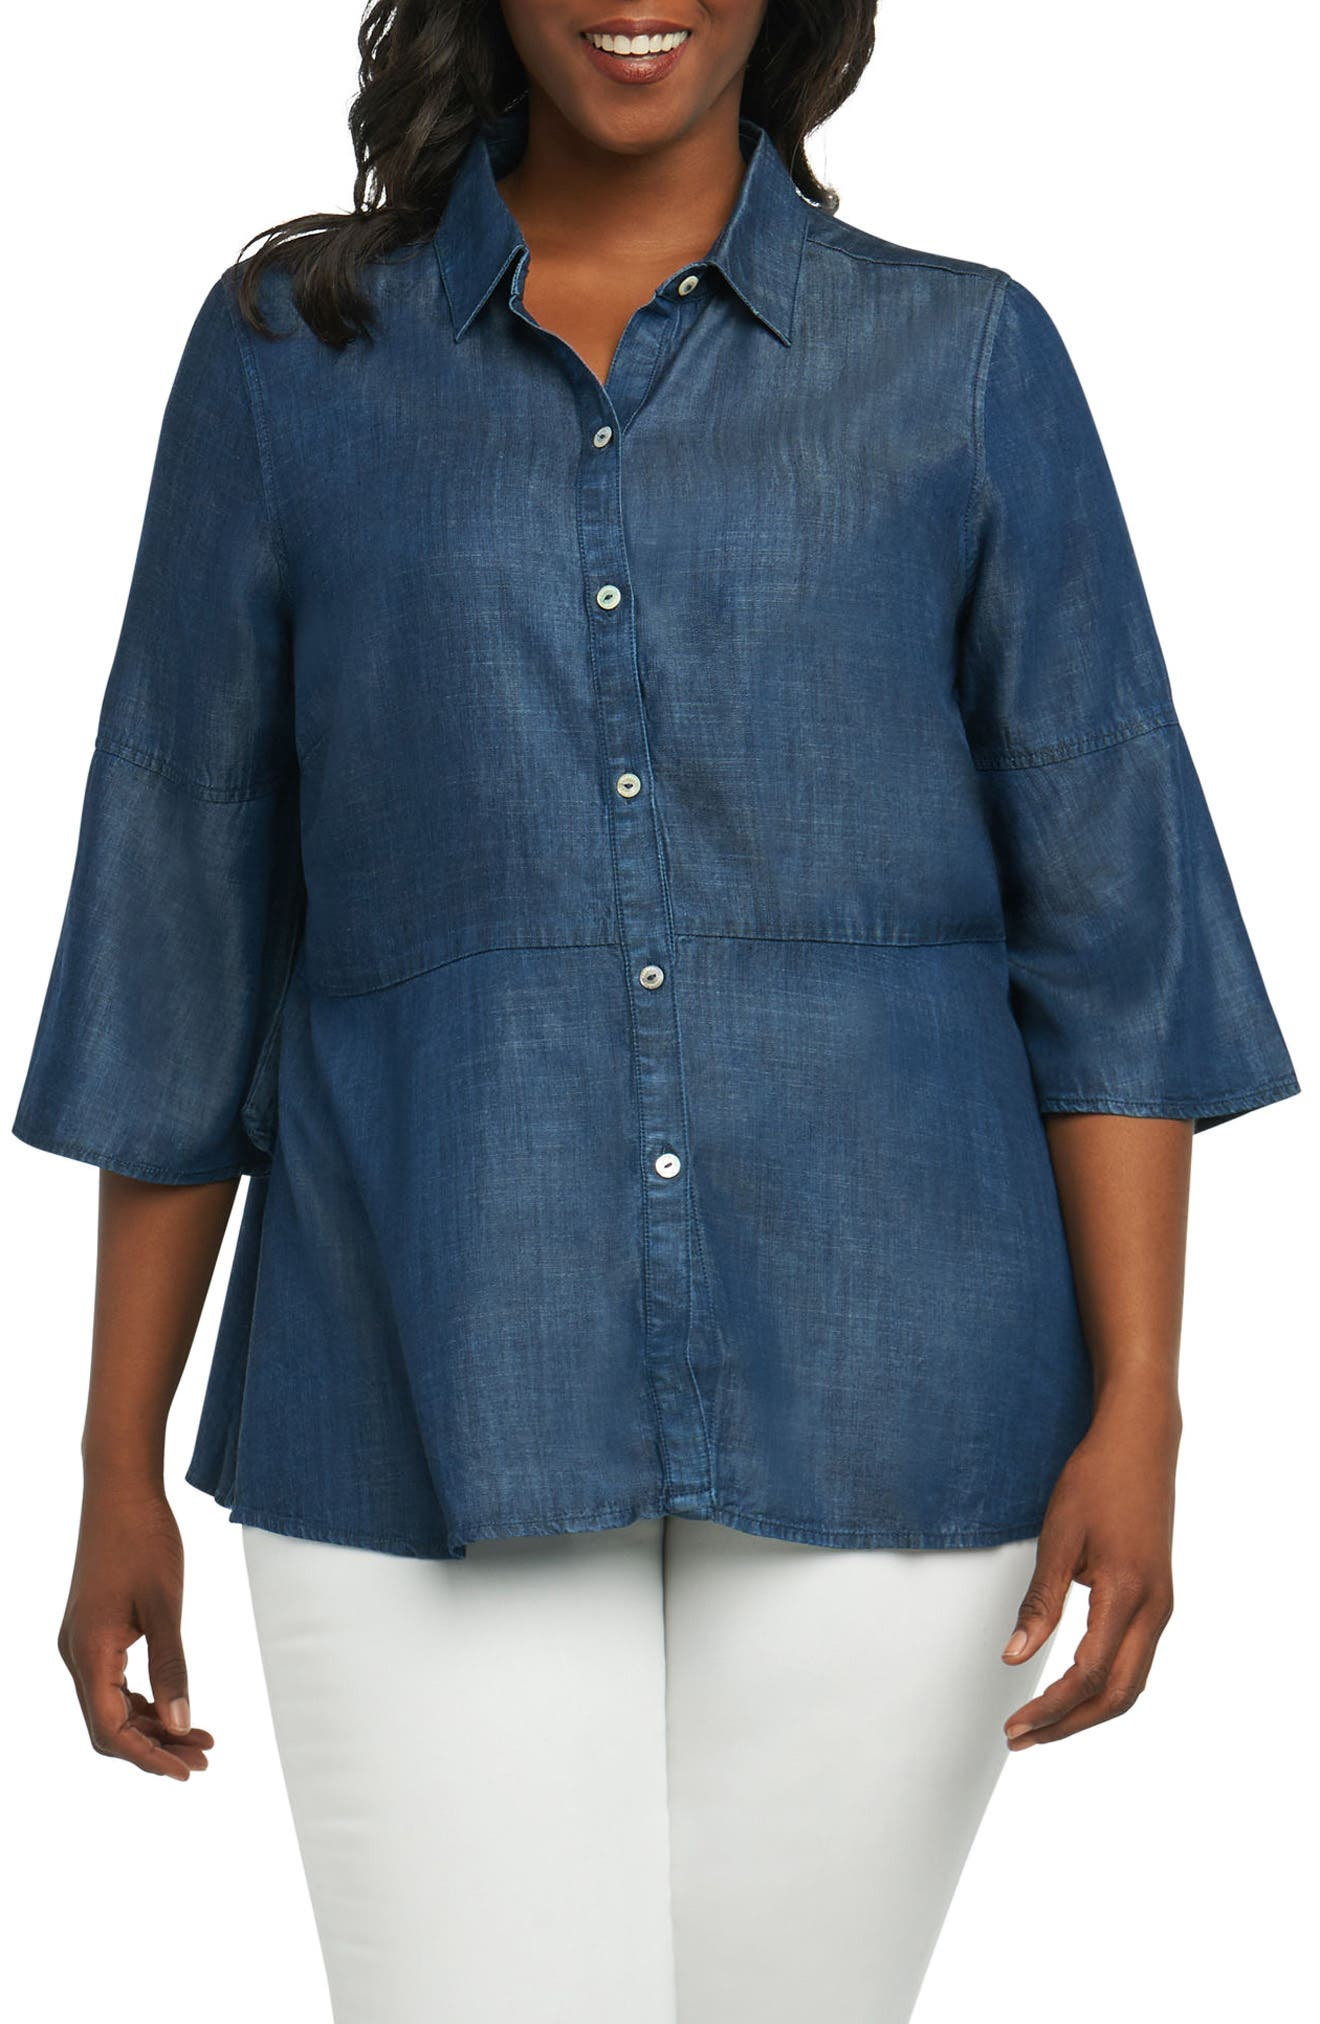 Estelle Chambray Shirt,                             Main thumbnail 1, color,                             415